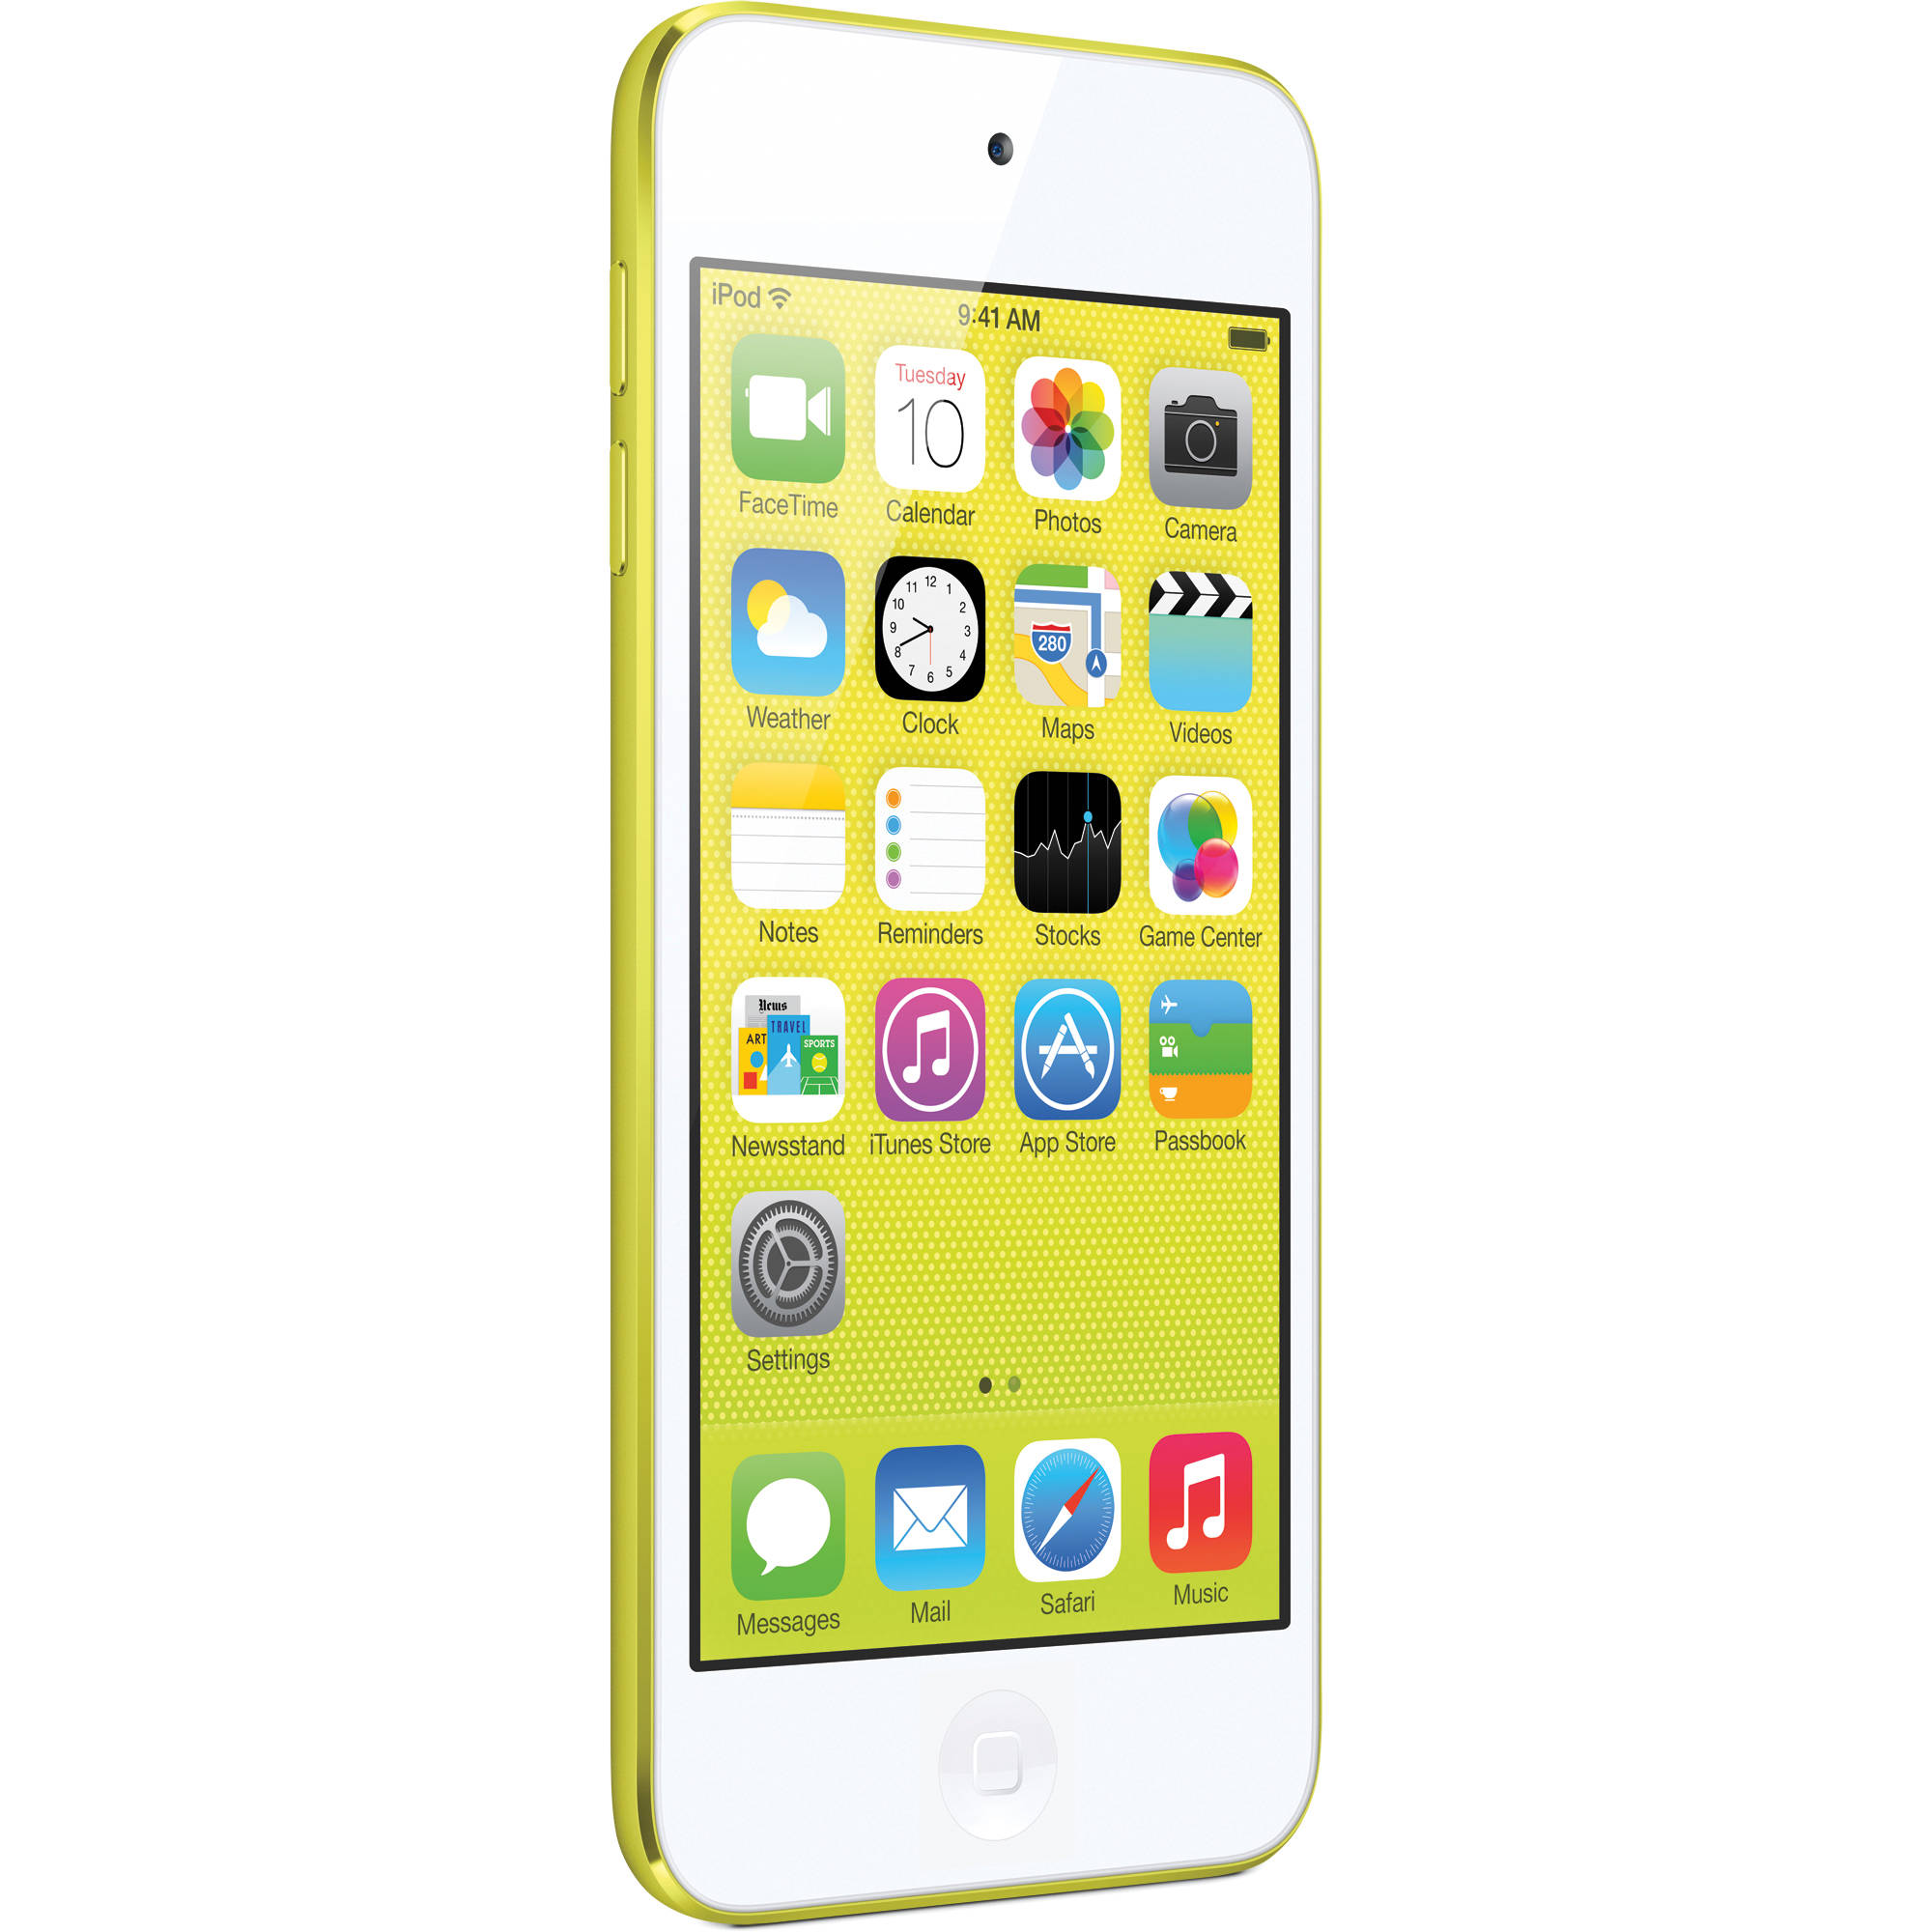 Apple 16GB iPod touch (Yellow) (5th Generation) MGG12LL/A B&H